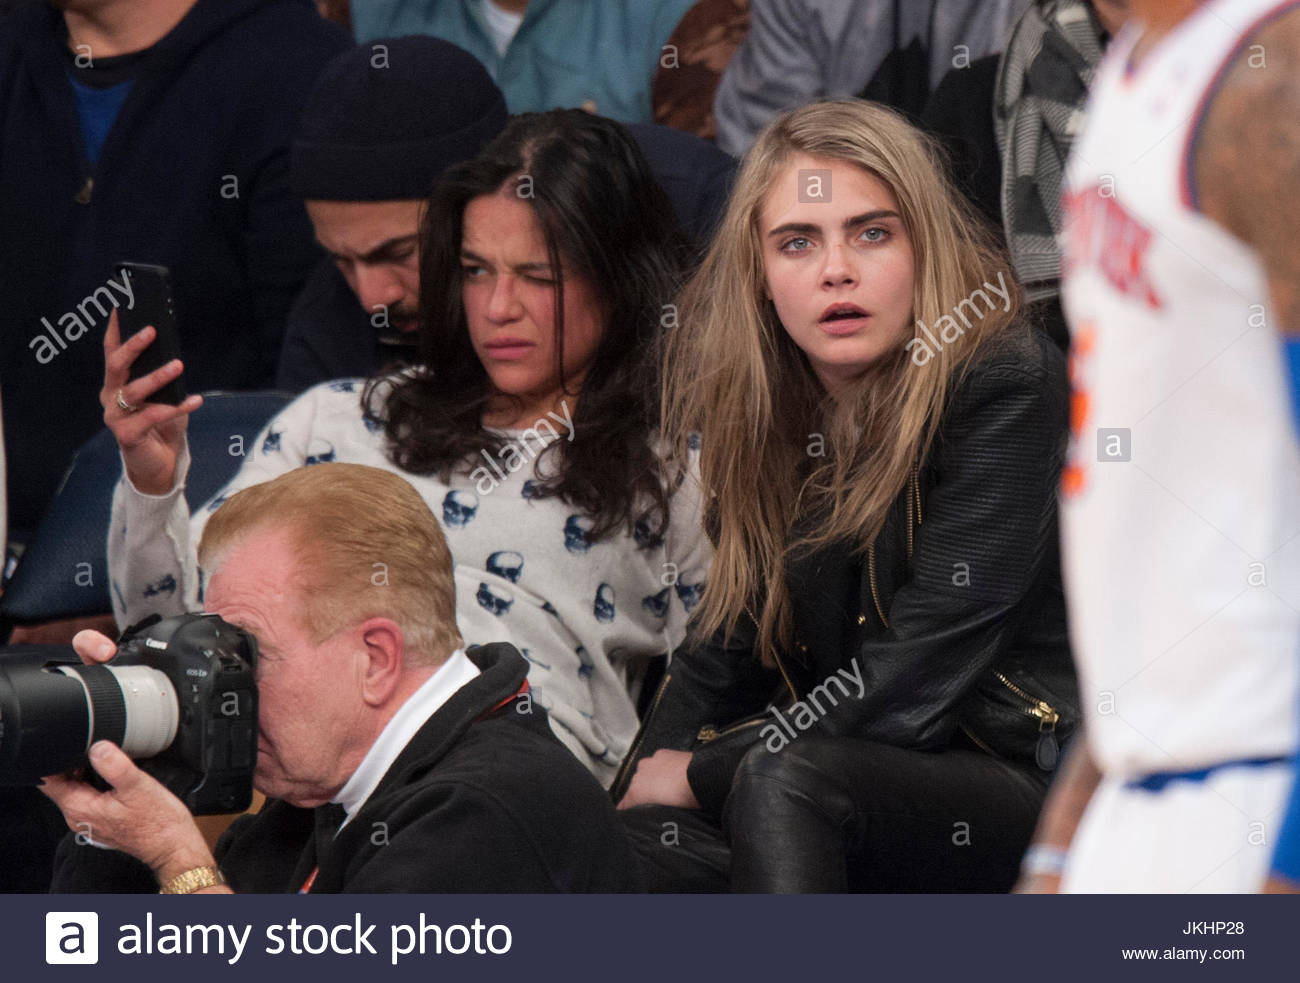 Have hit Michelle rodriguez and cara delevingne what